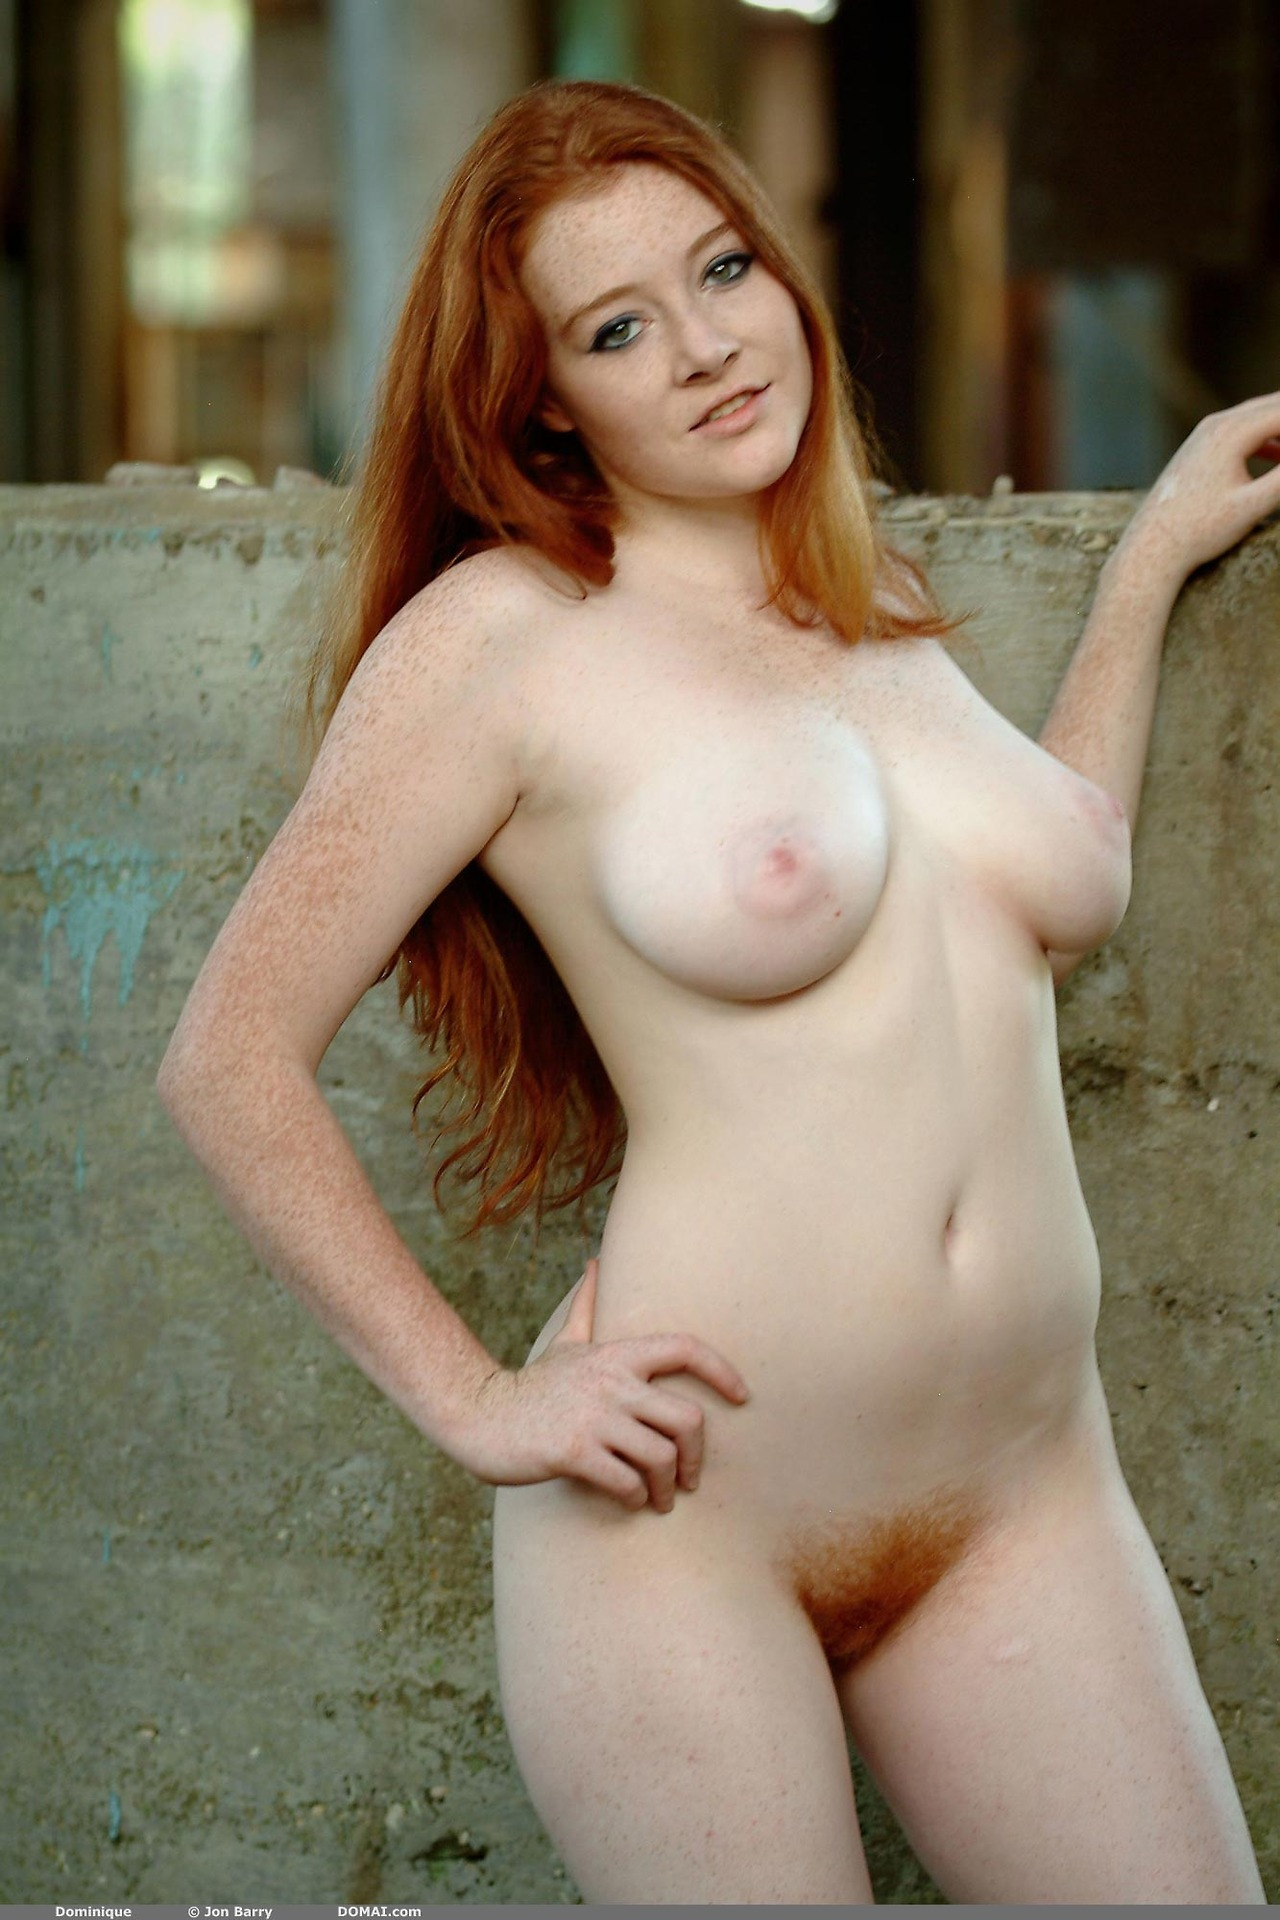 Pity, that Beautiful nude girls with freckles this brilliant